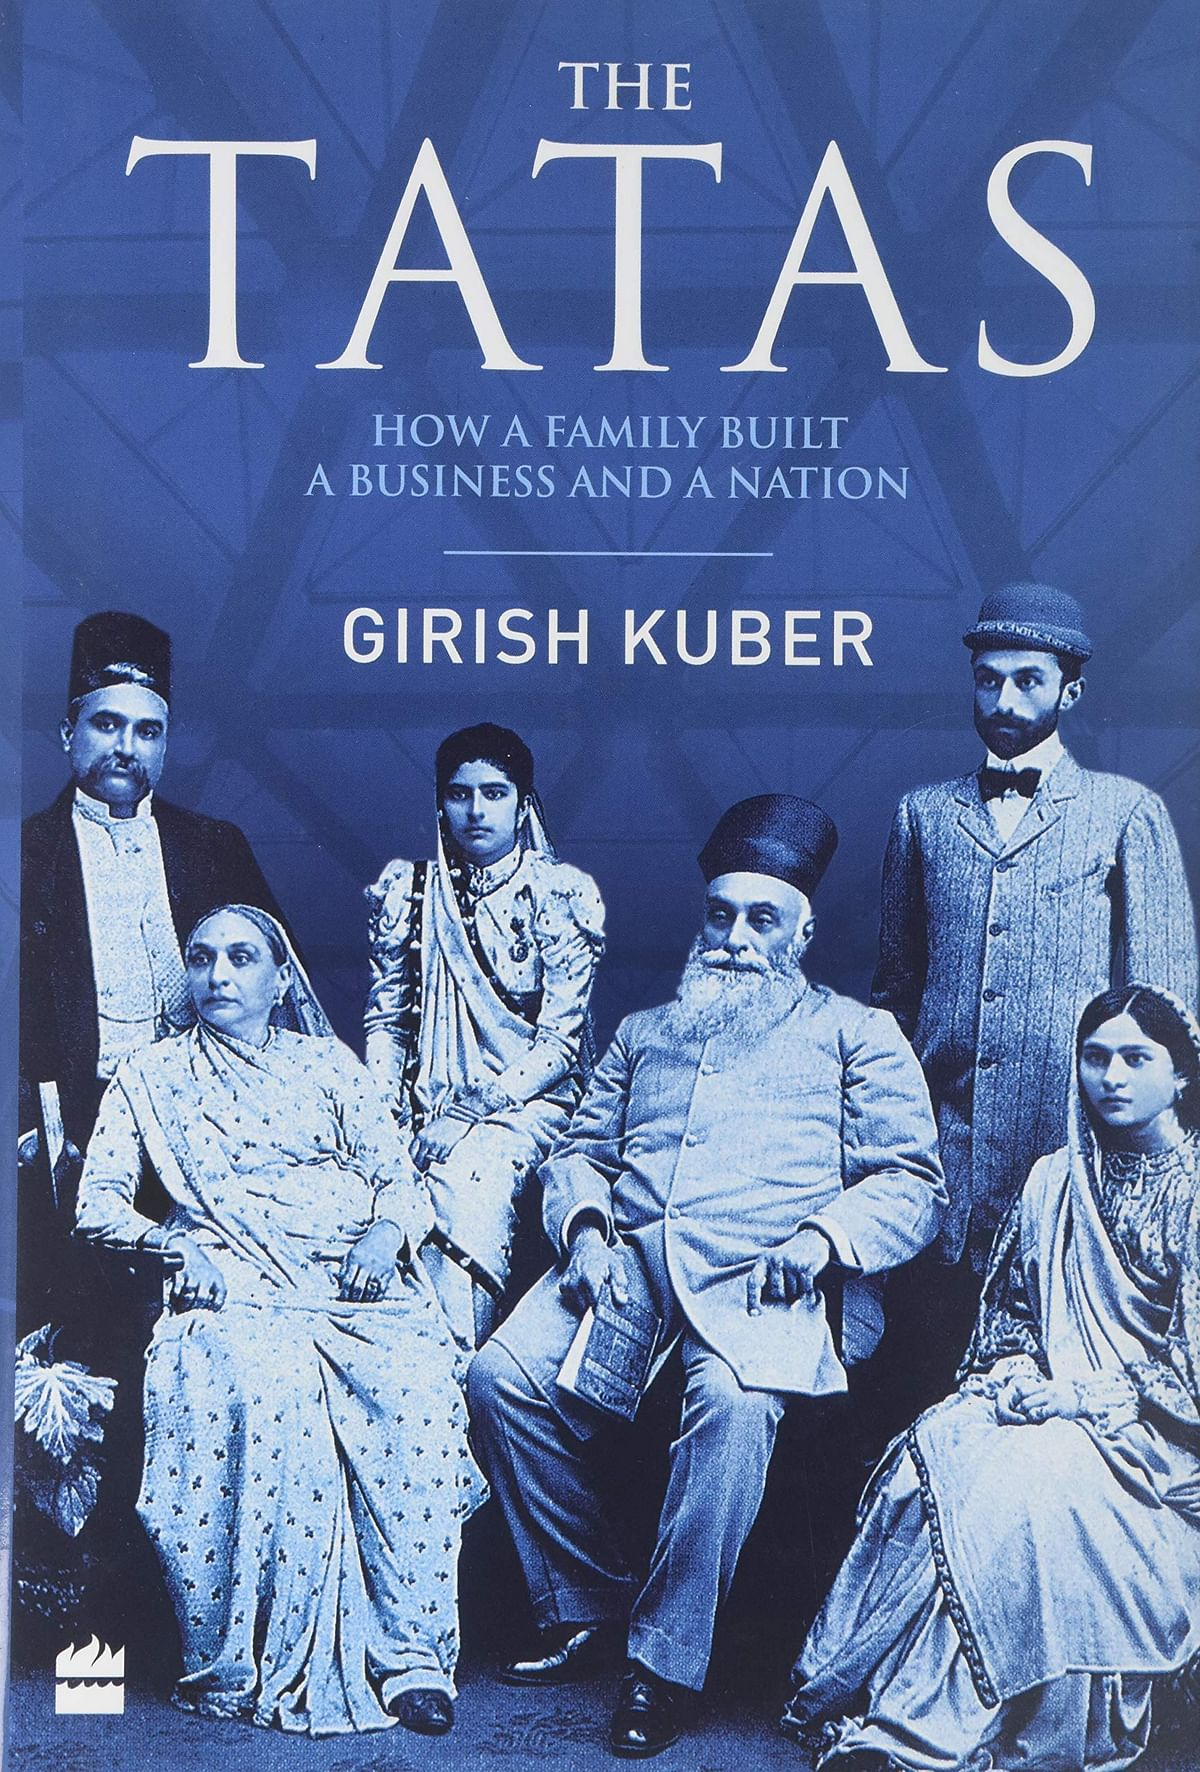 The TATAS - How A Family Built A Business and a Nation